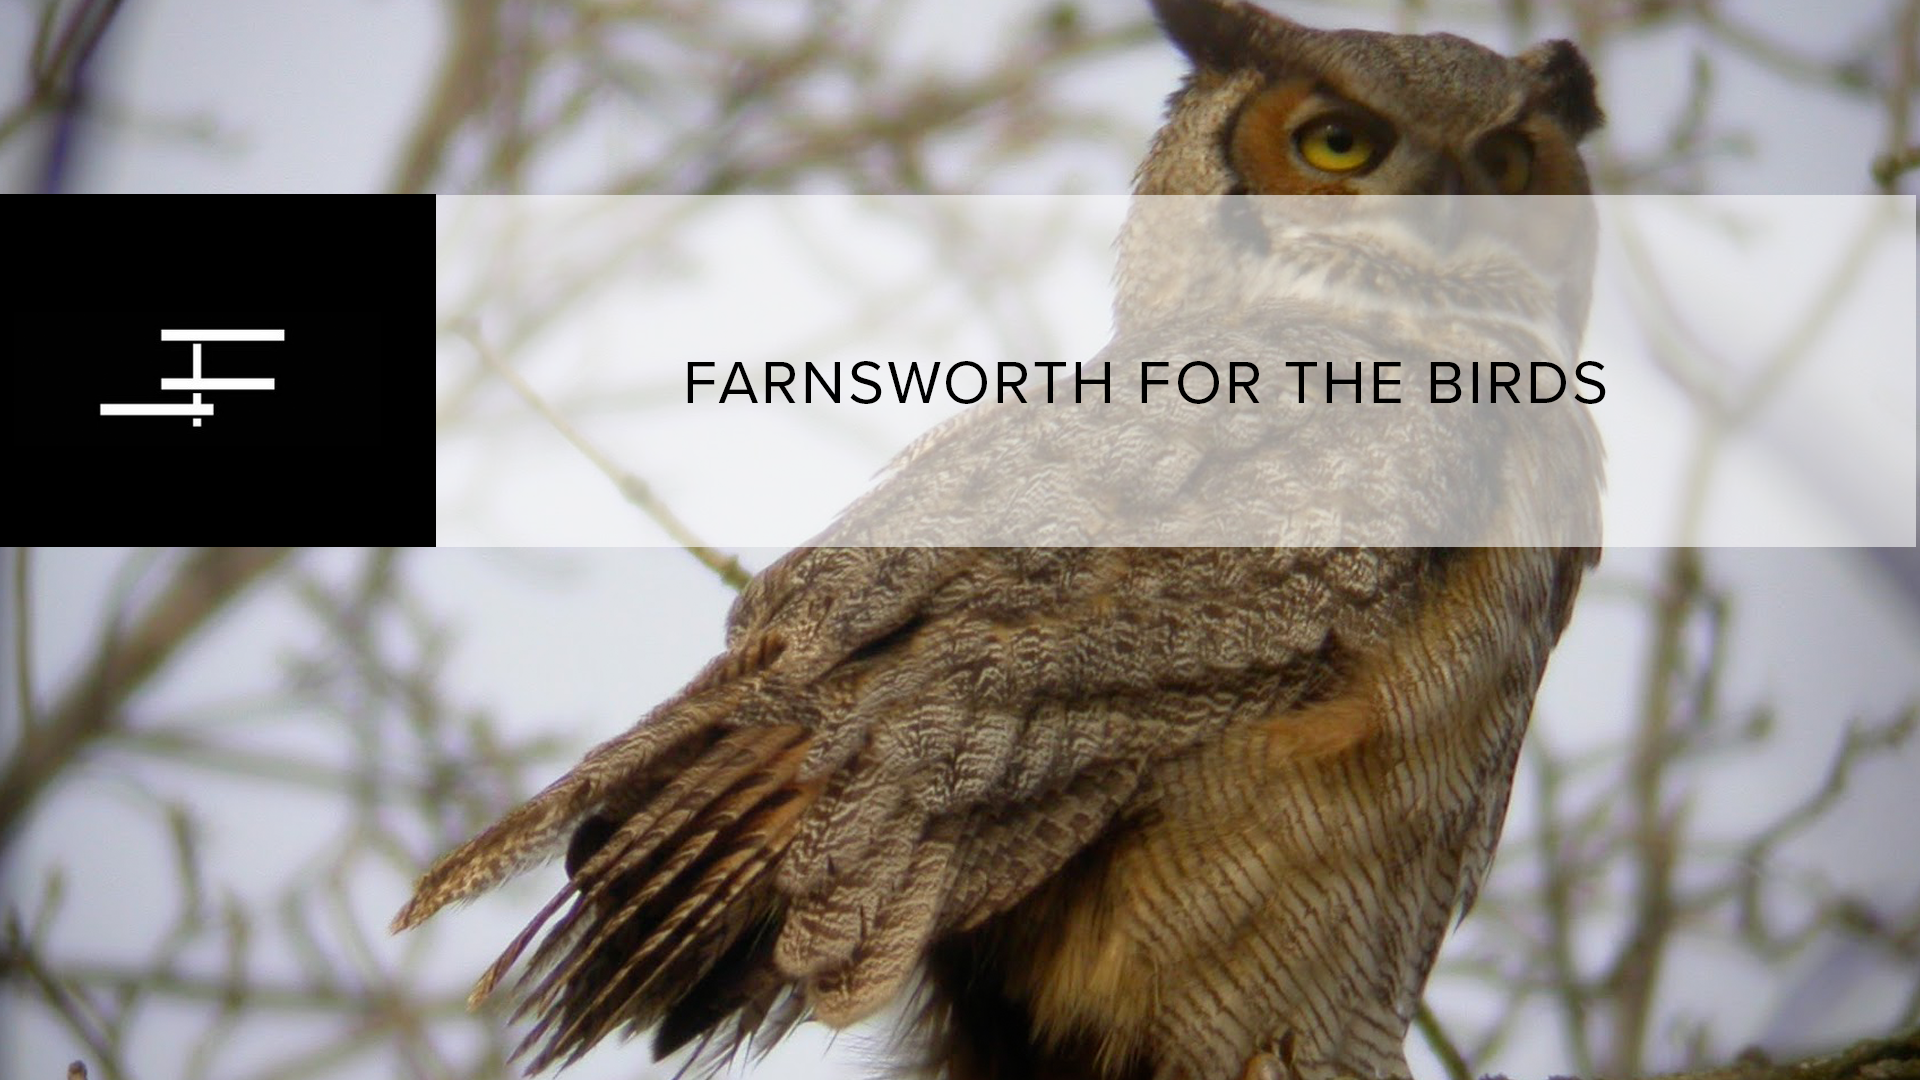 Farnworth For The Birds: Fall Migration